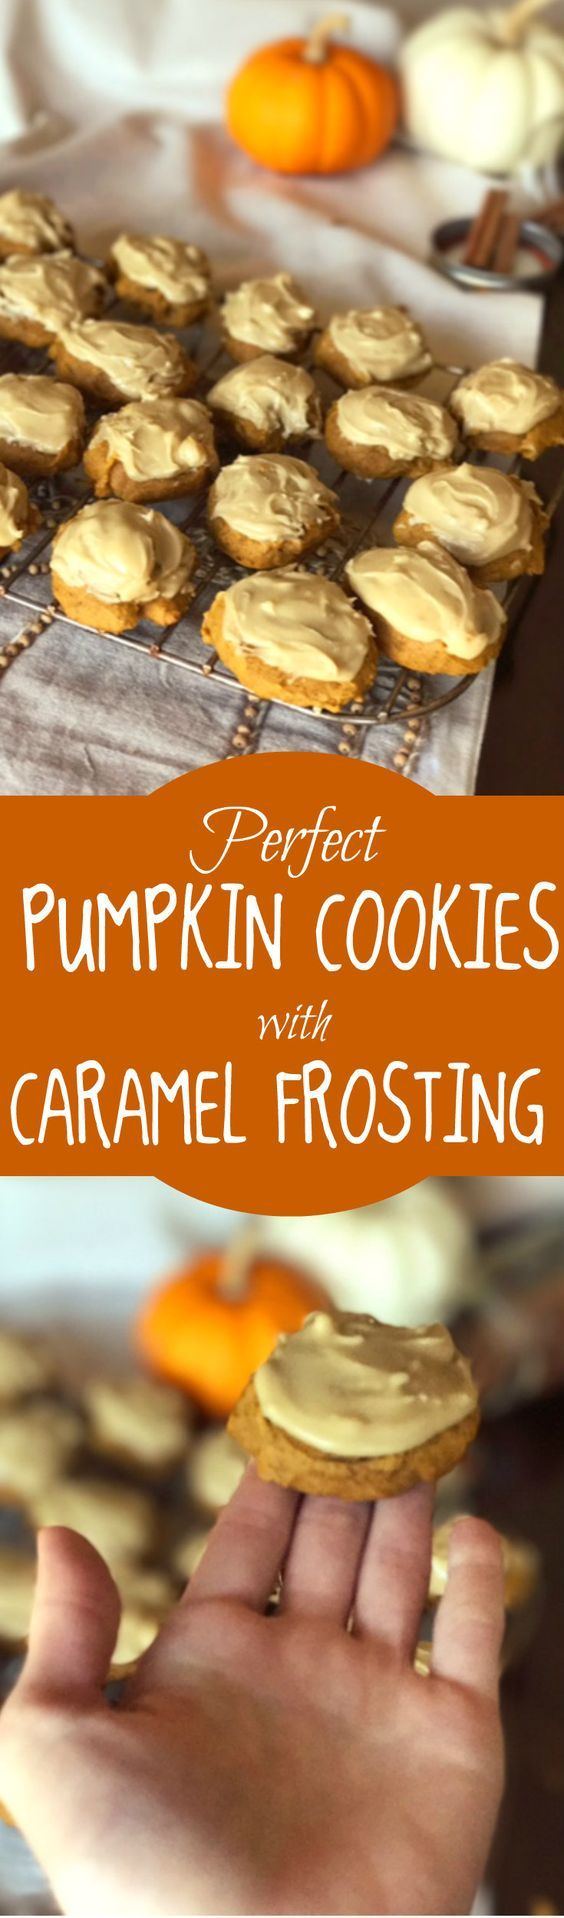 Best recipe for easy pumpkin cookies with caramel frosting! Easy fall recipe! Perfect soft, moist pumpkin cookies with sweet frosting. Best pumpkin cookies ever.